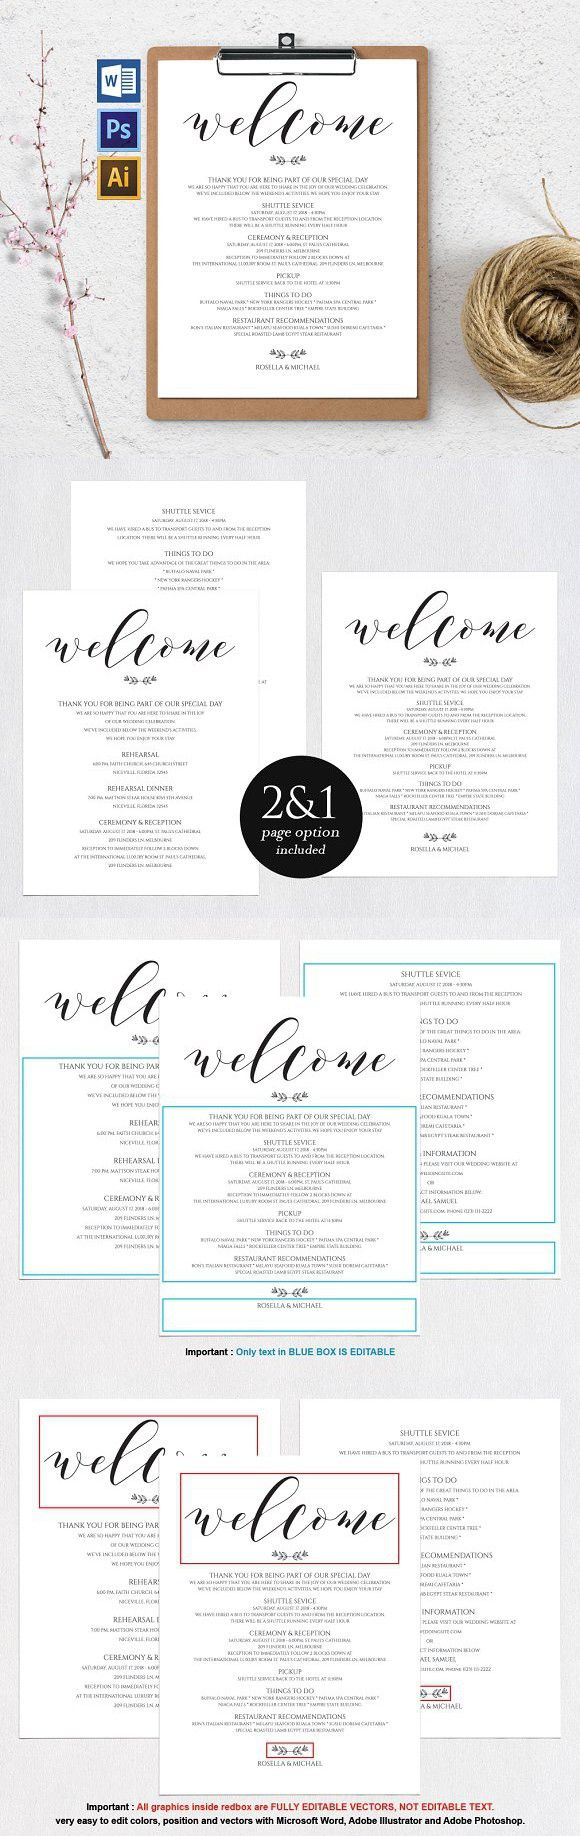 Wedding Itinerary Wpc106. Invitation Templates